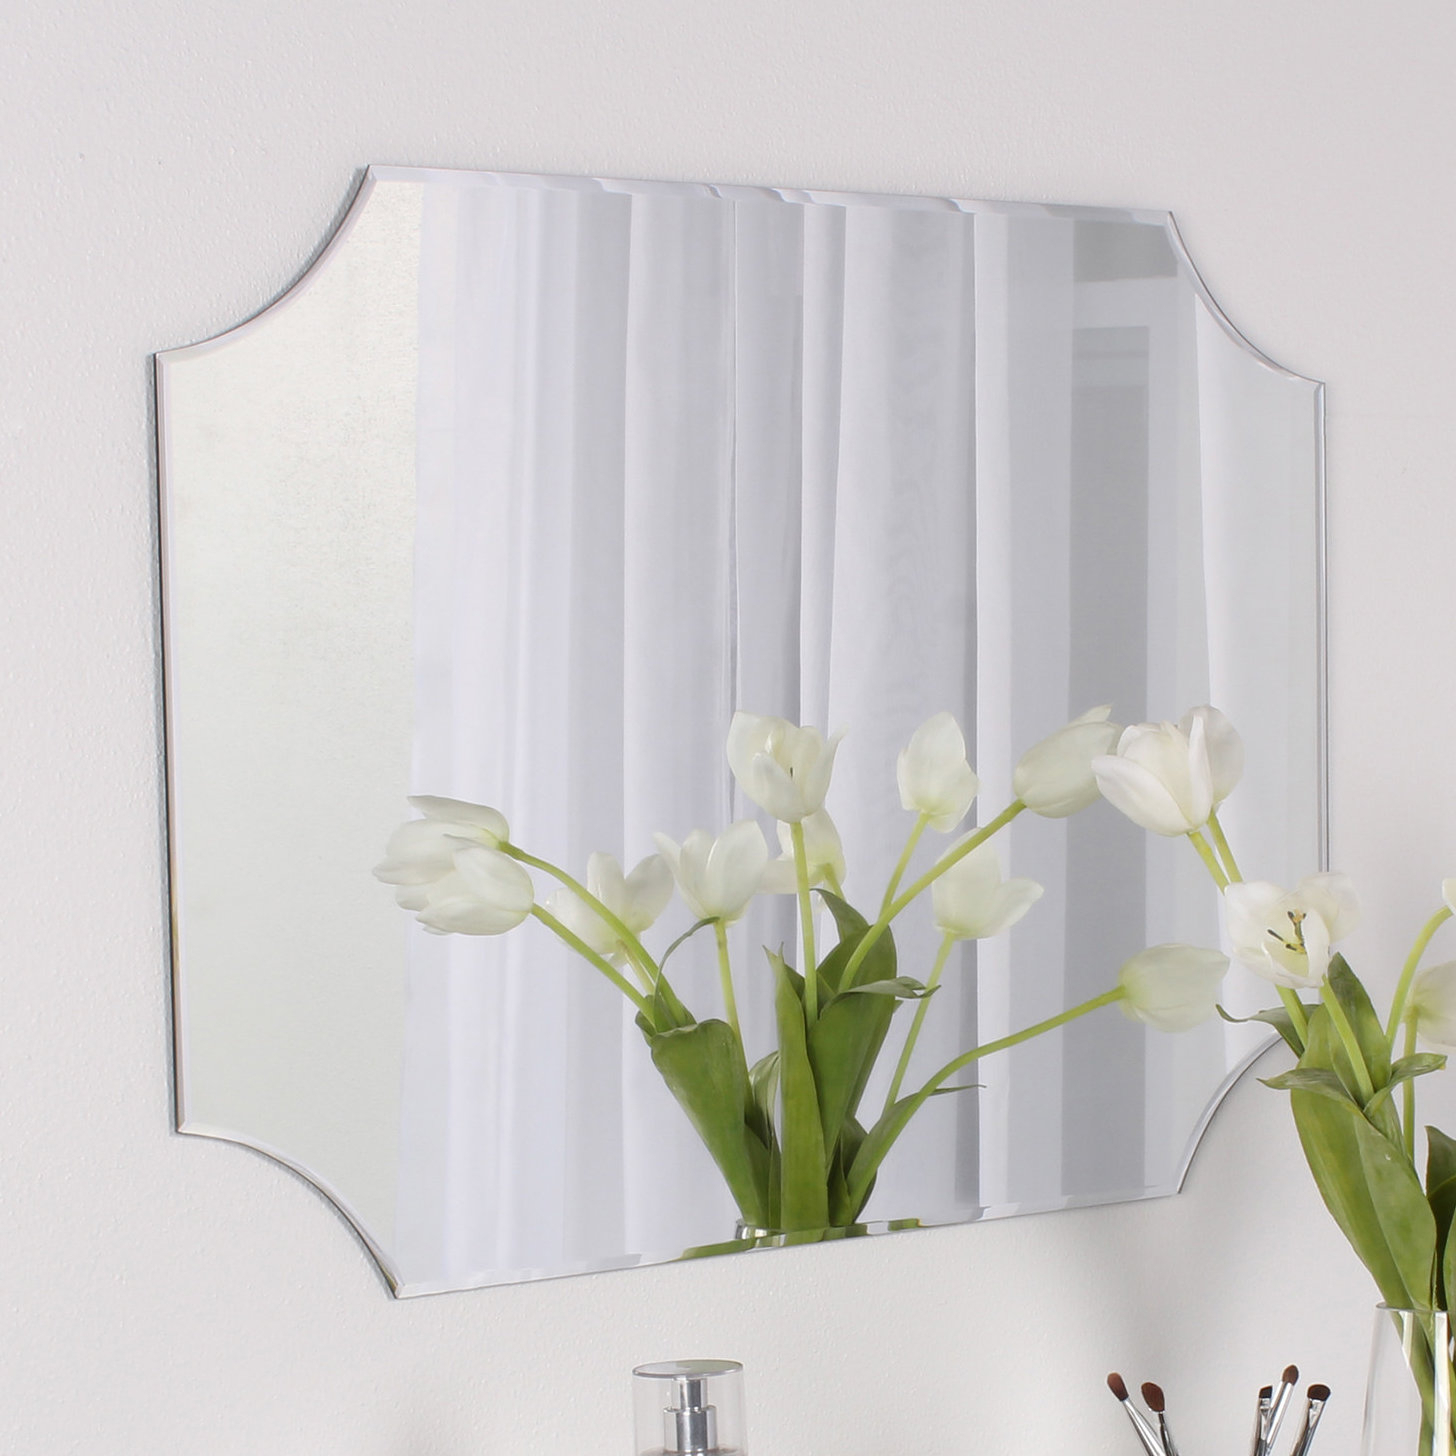 Dsov Reign Frameless Rectangle Scalloped Beveled Wall Mirror Regarding Lidya Frameless Beveled Wall Mirrors (View 7 of 30)